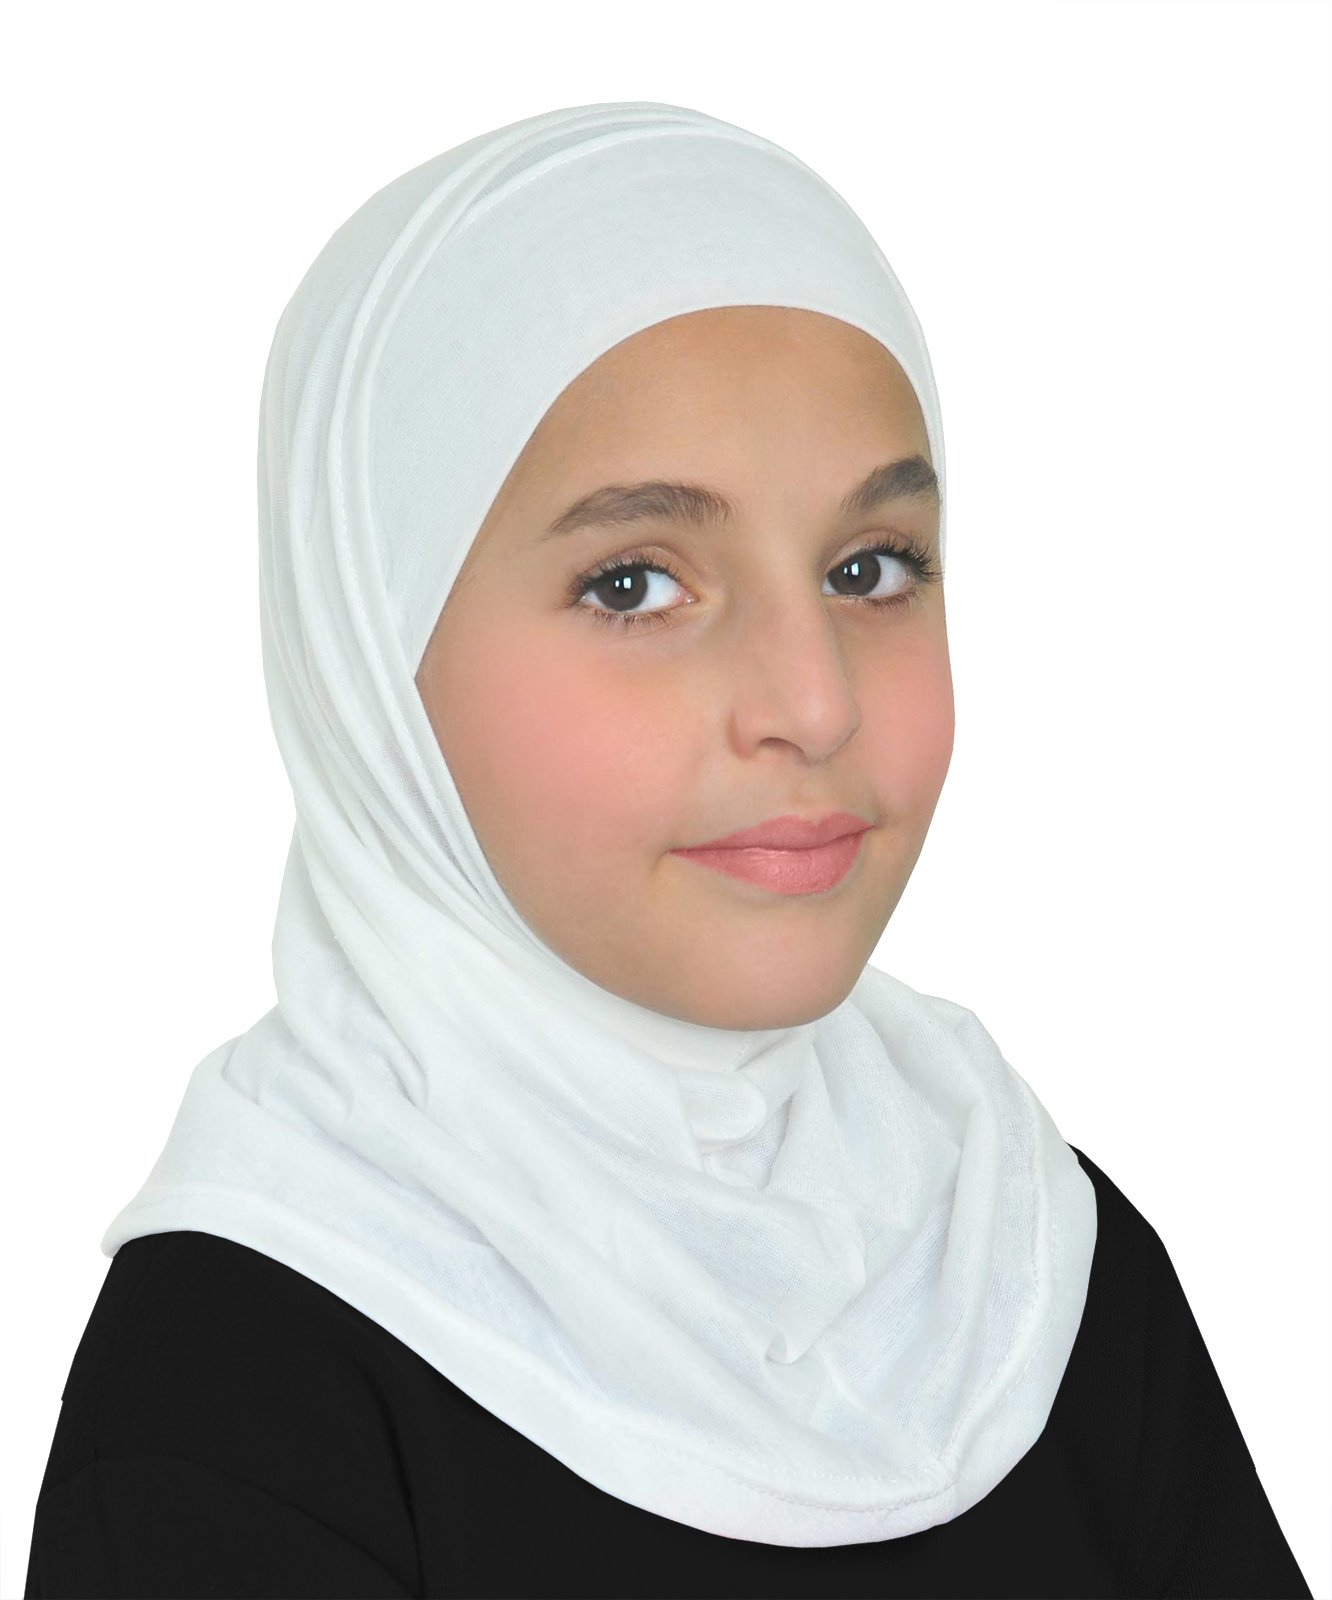 Girls Cotton Amira Hijab 2 Piece Set with Pull On Hood & Tube Cap (White)